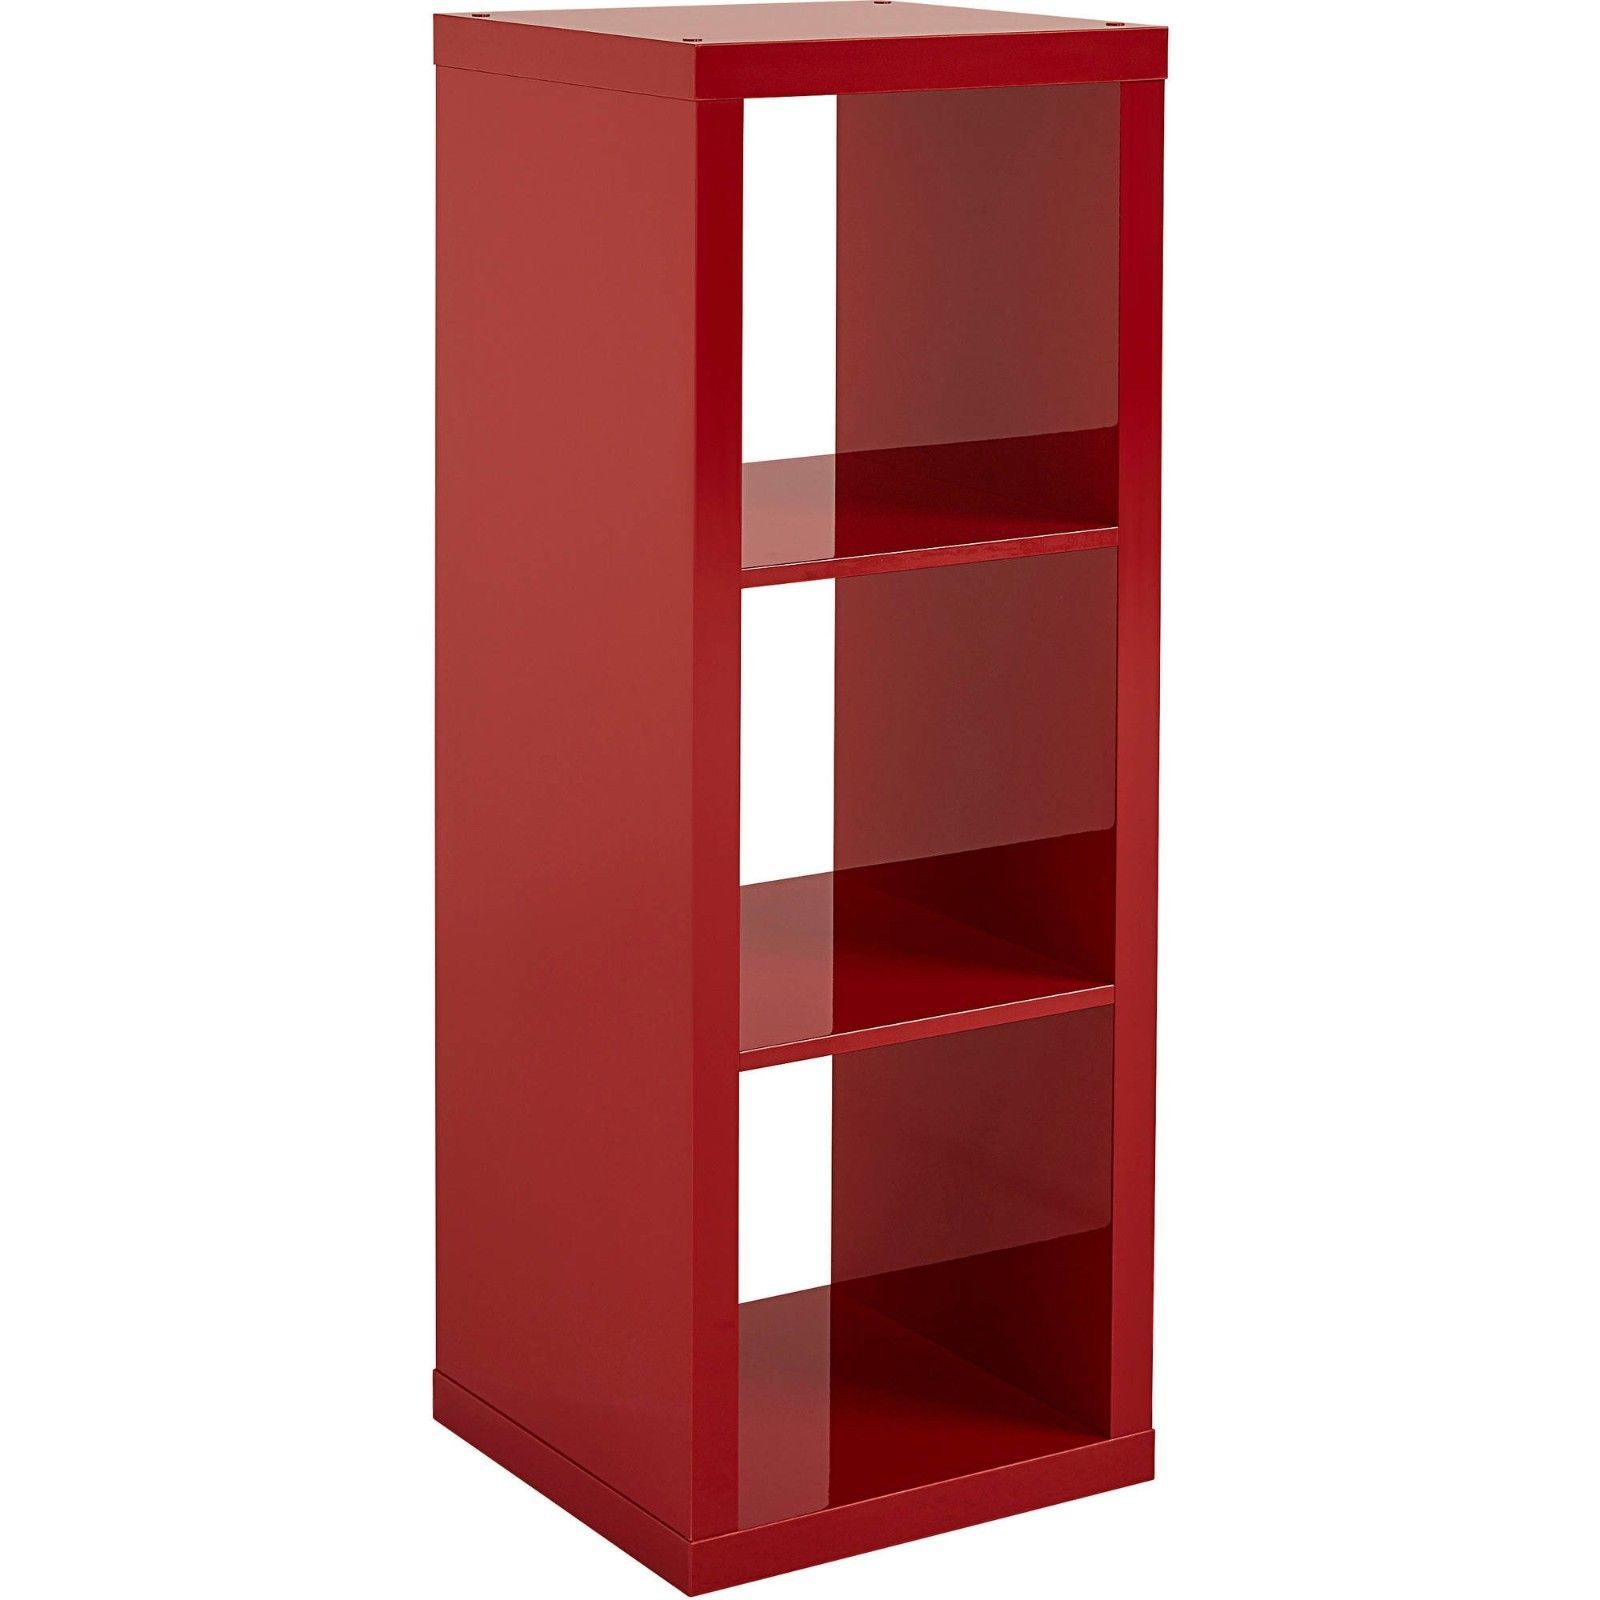 Better Homes and Gardens Furniture 3-Cube Organizer Storage Bookcase Red Gloss